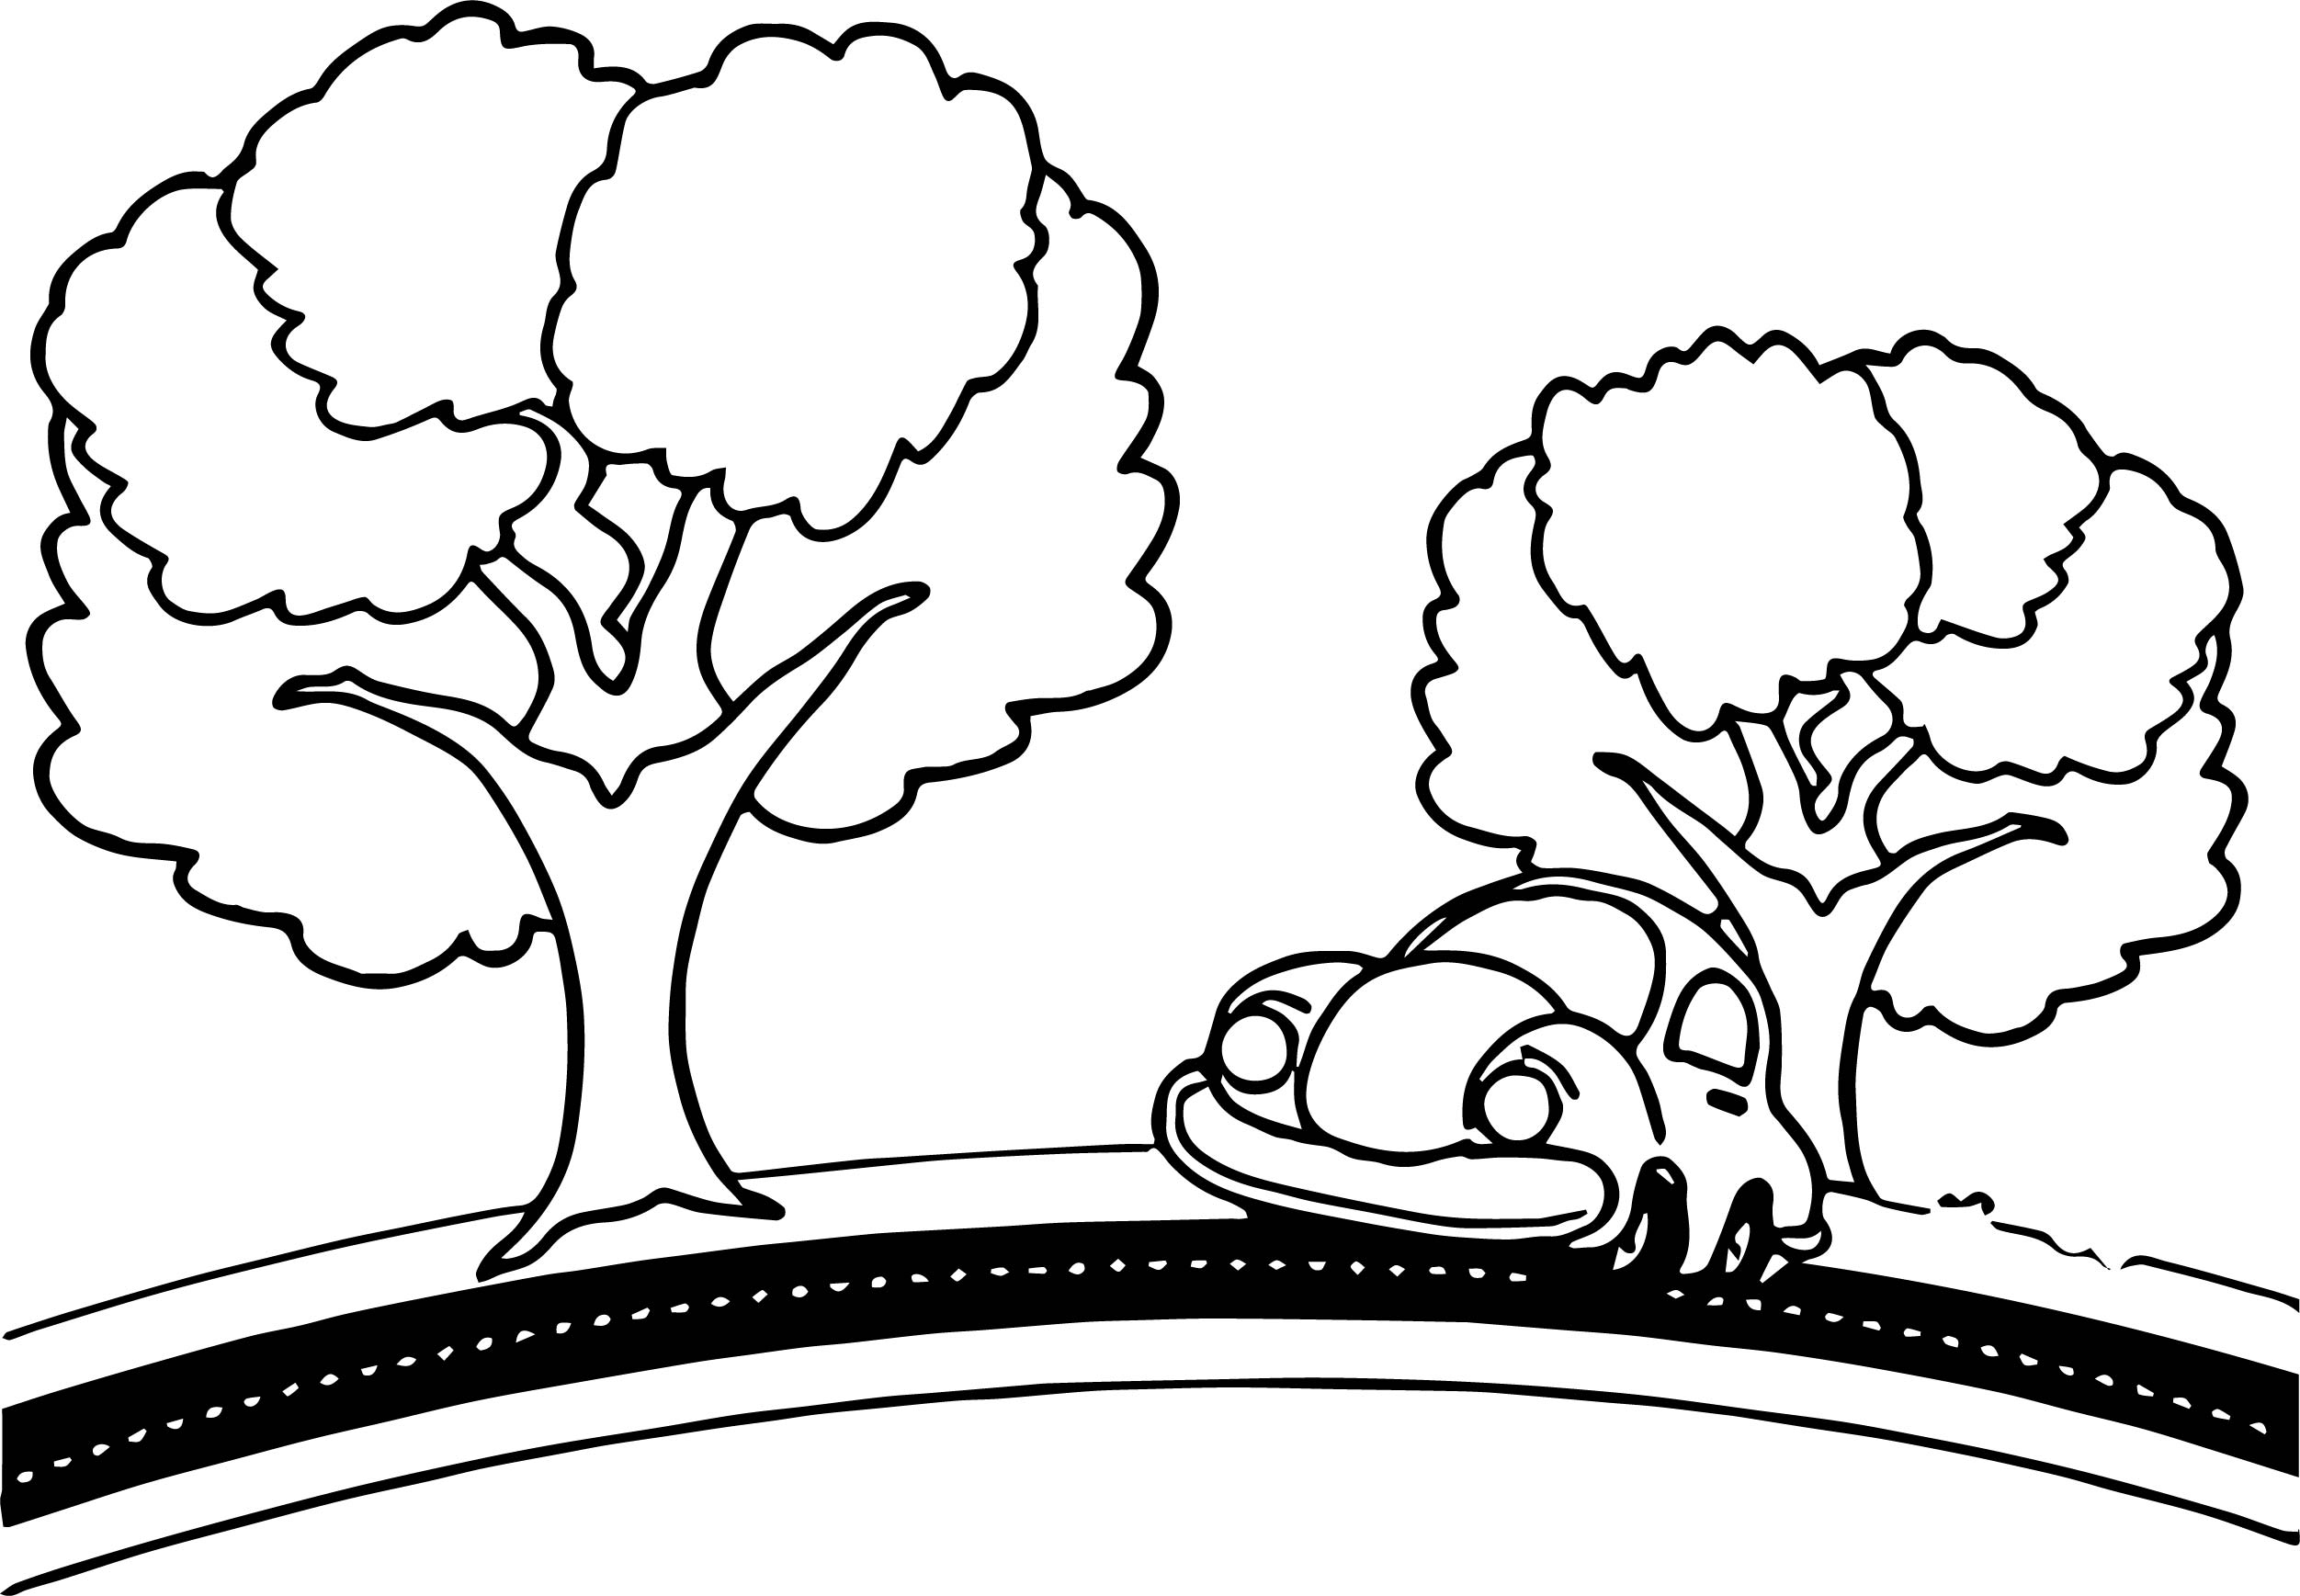 Car Tree Road Coloring Page on driving car